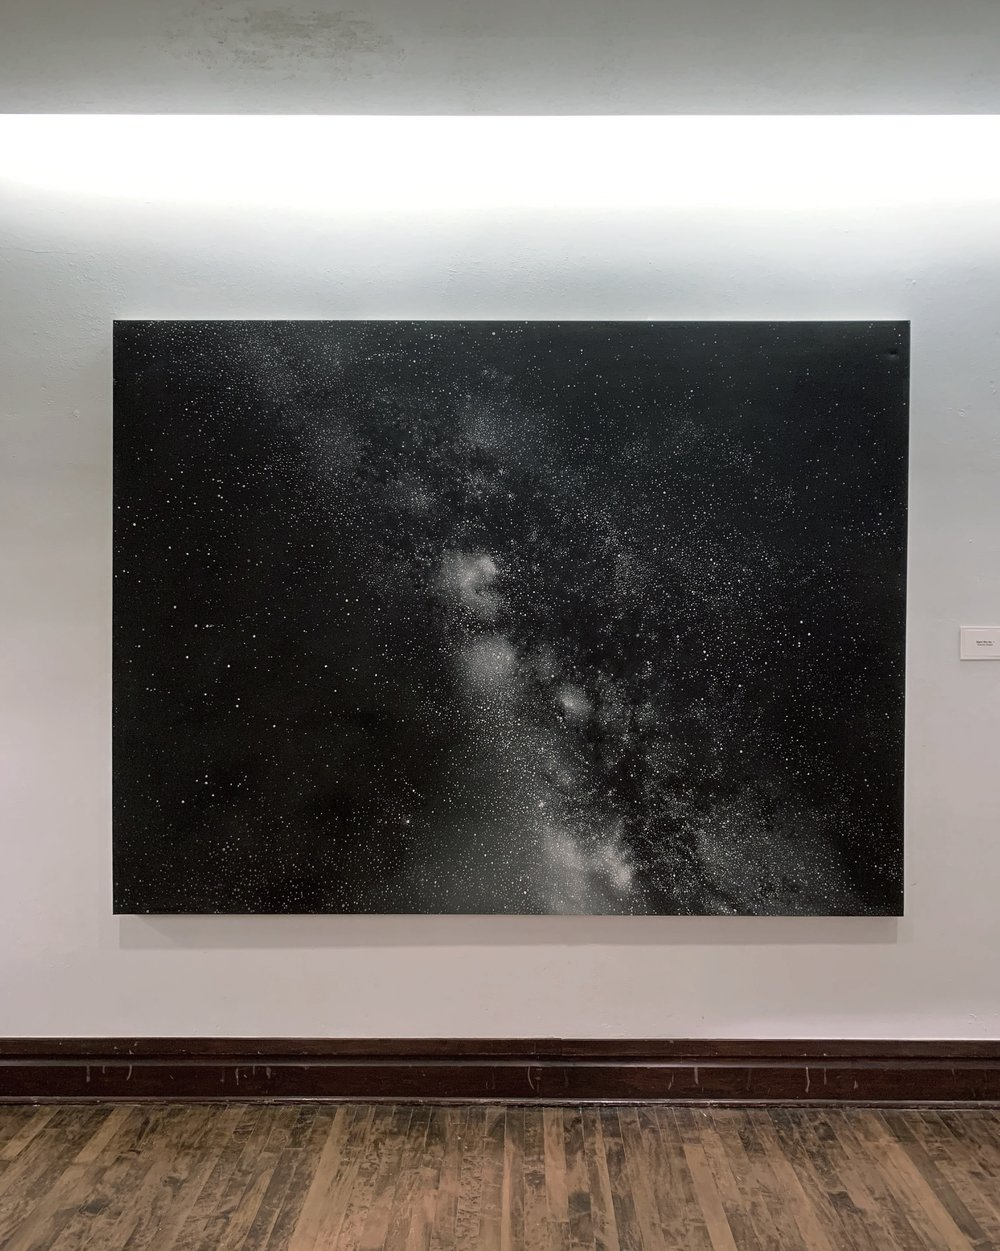 Night Sky No. 1, on view at the McKinney Performing Arts Center through April 27